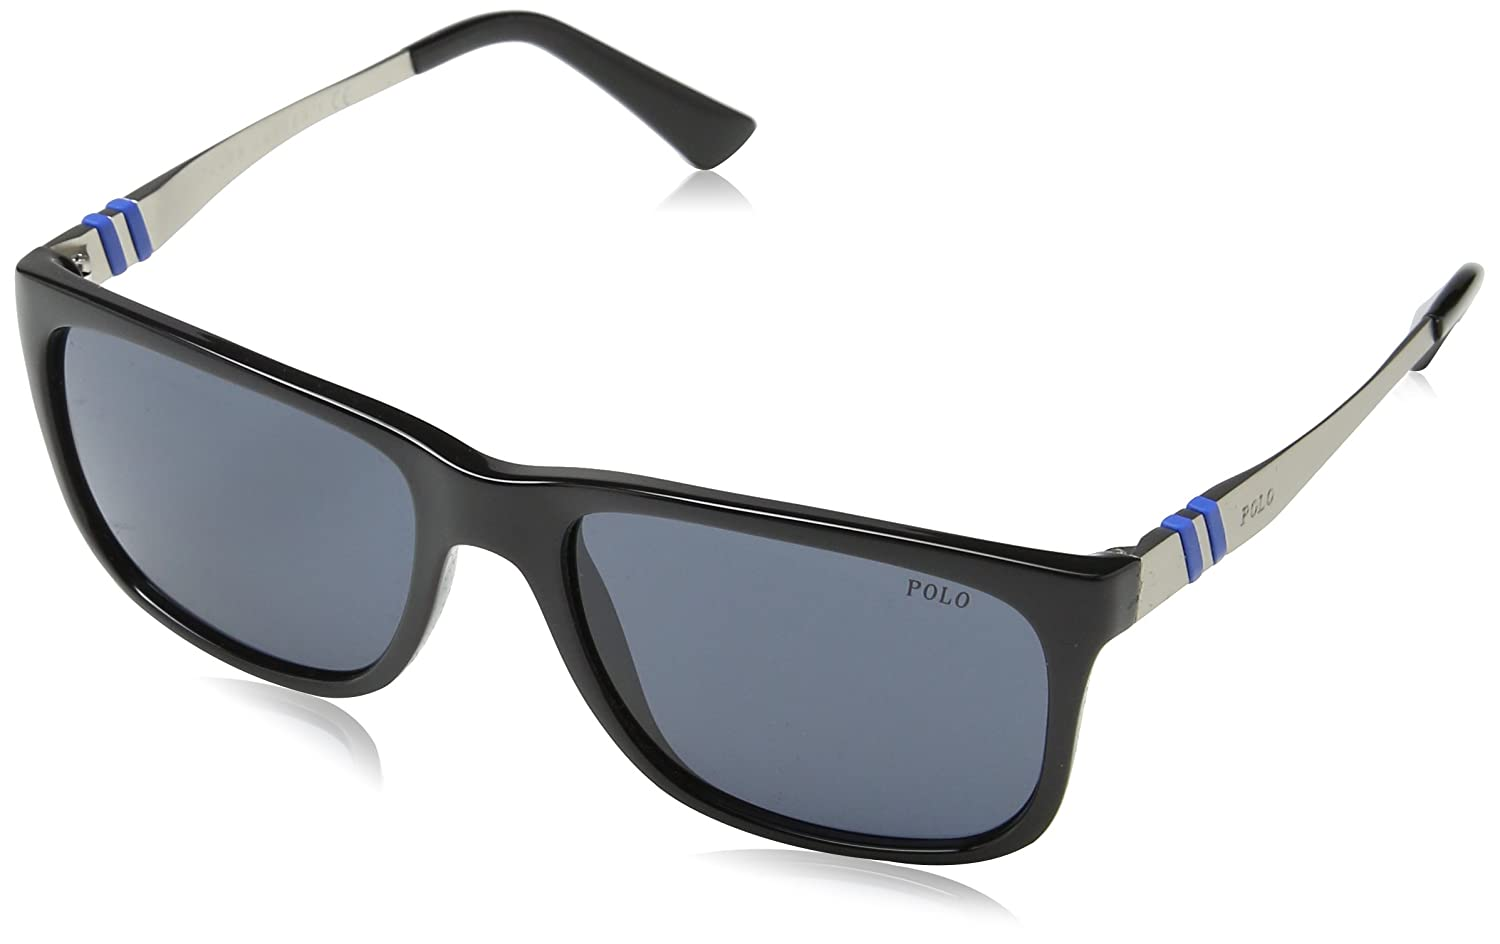 2a0cde17dd0e Amazon.com: Polo Ralph Lauren PH4088 500187 Black/Silver PH4088 Wayfarer  Sunglasses Lens: Shoes